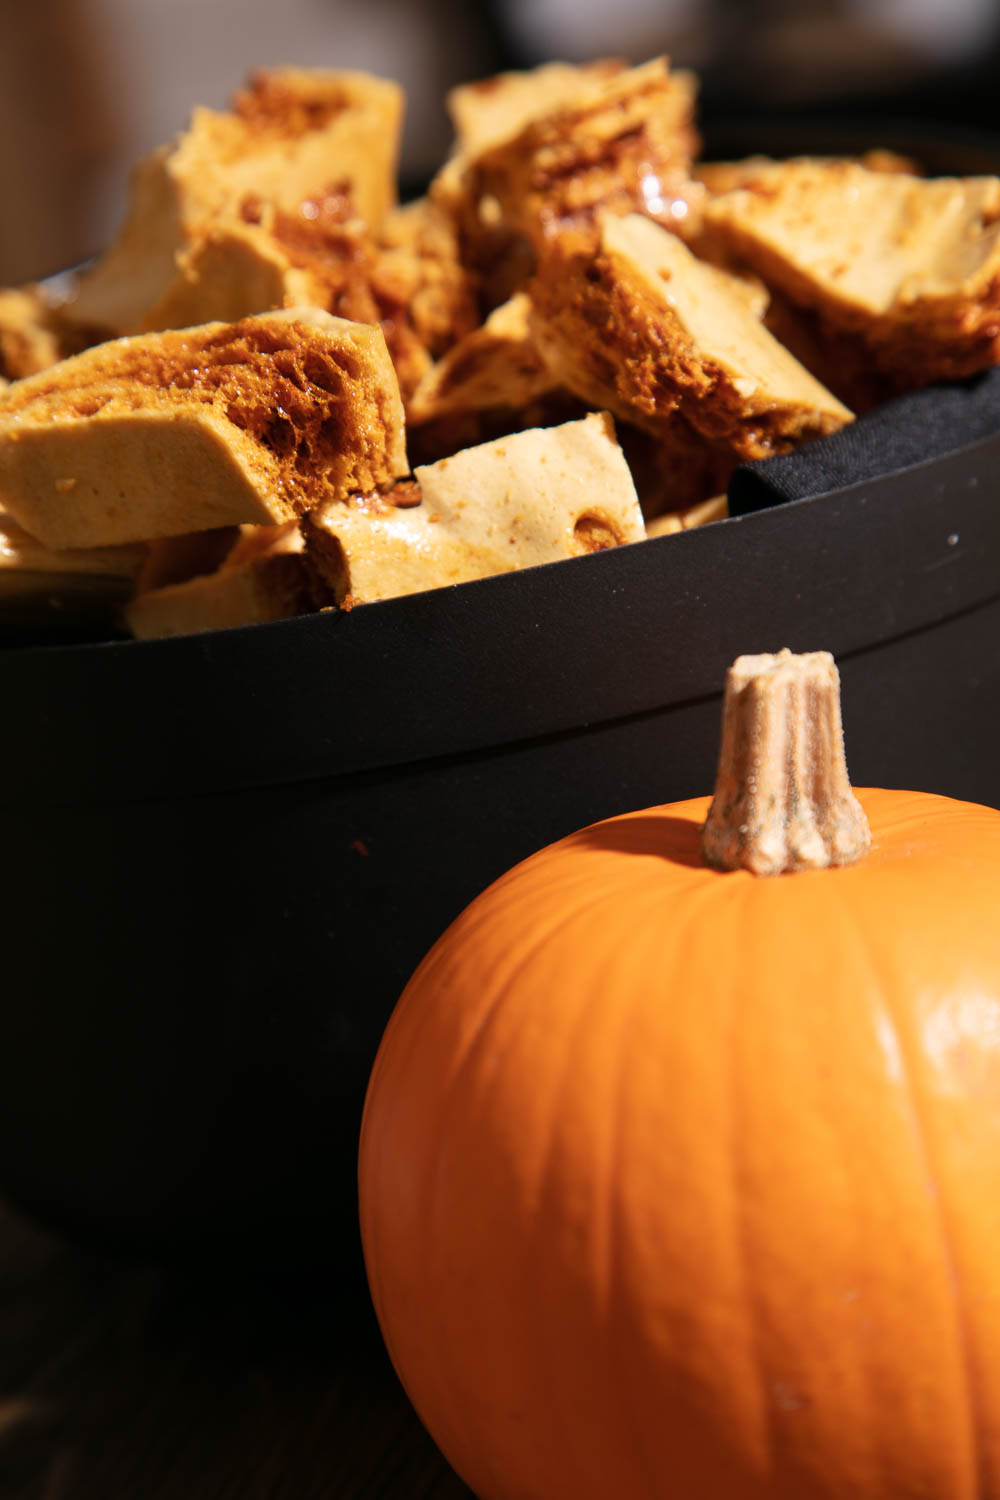 Honeycomb in a cauldron behind a pumpkin.